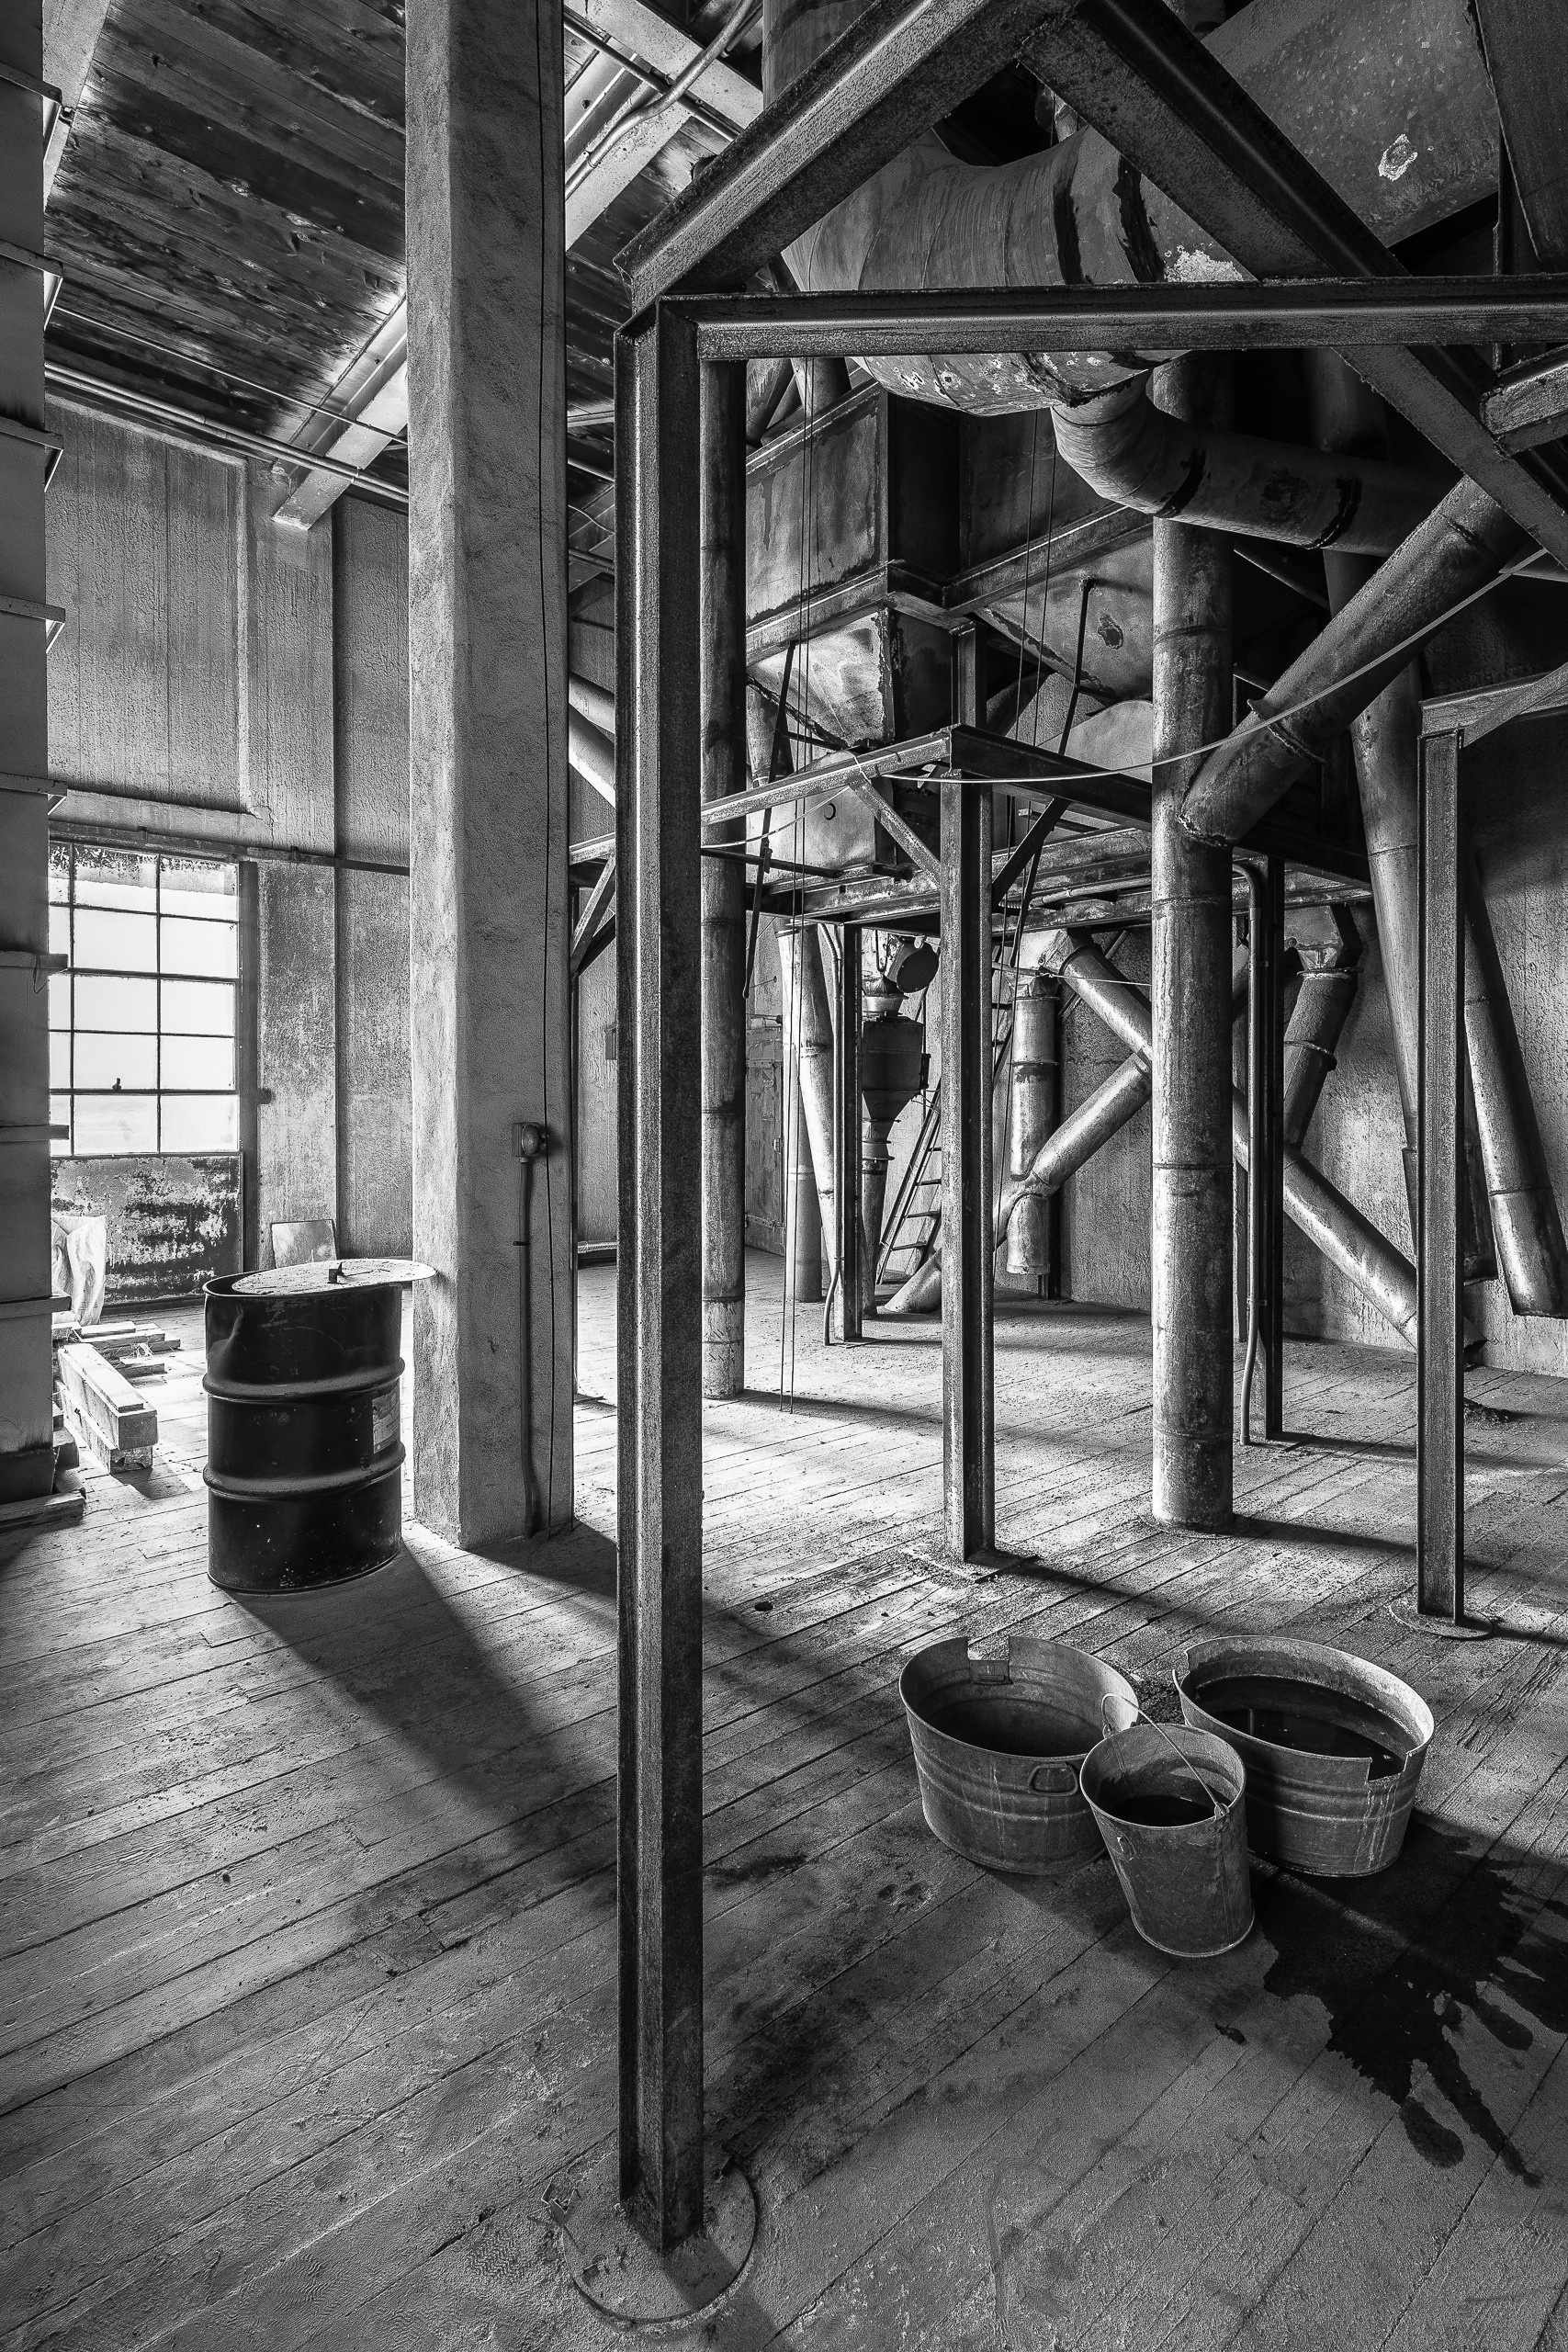 Ducts, Buckets, A Barrel And A Window